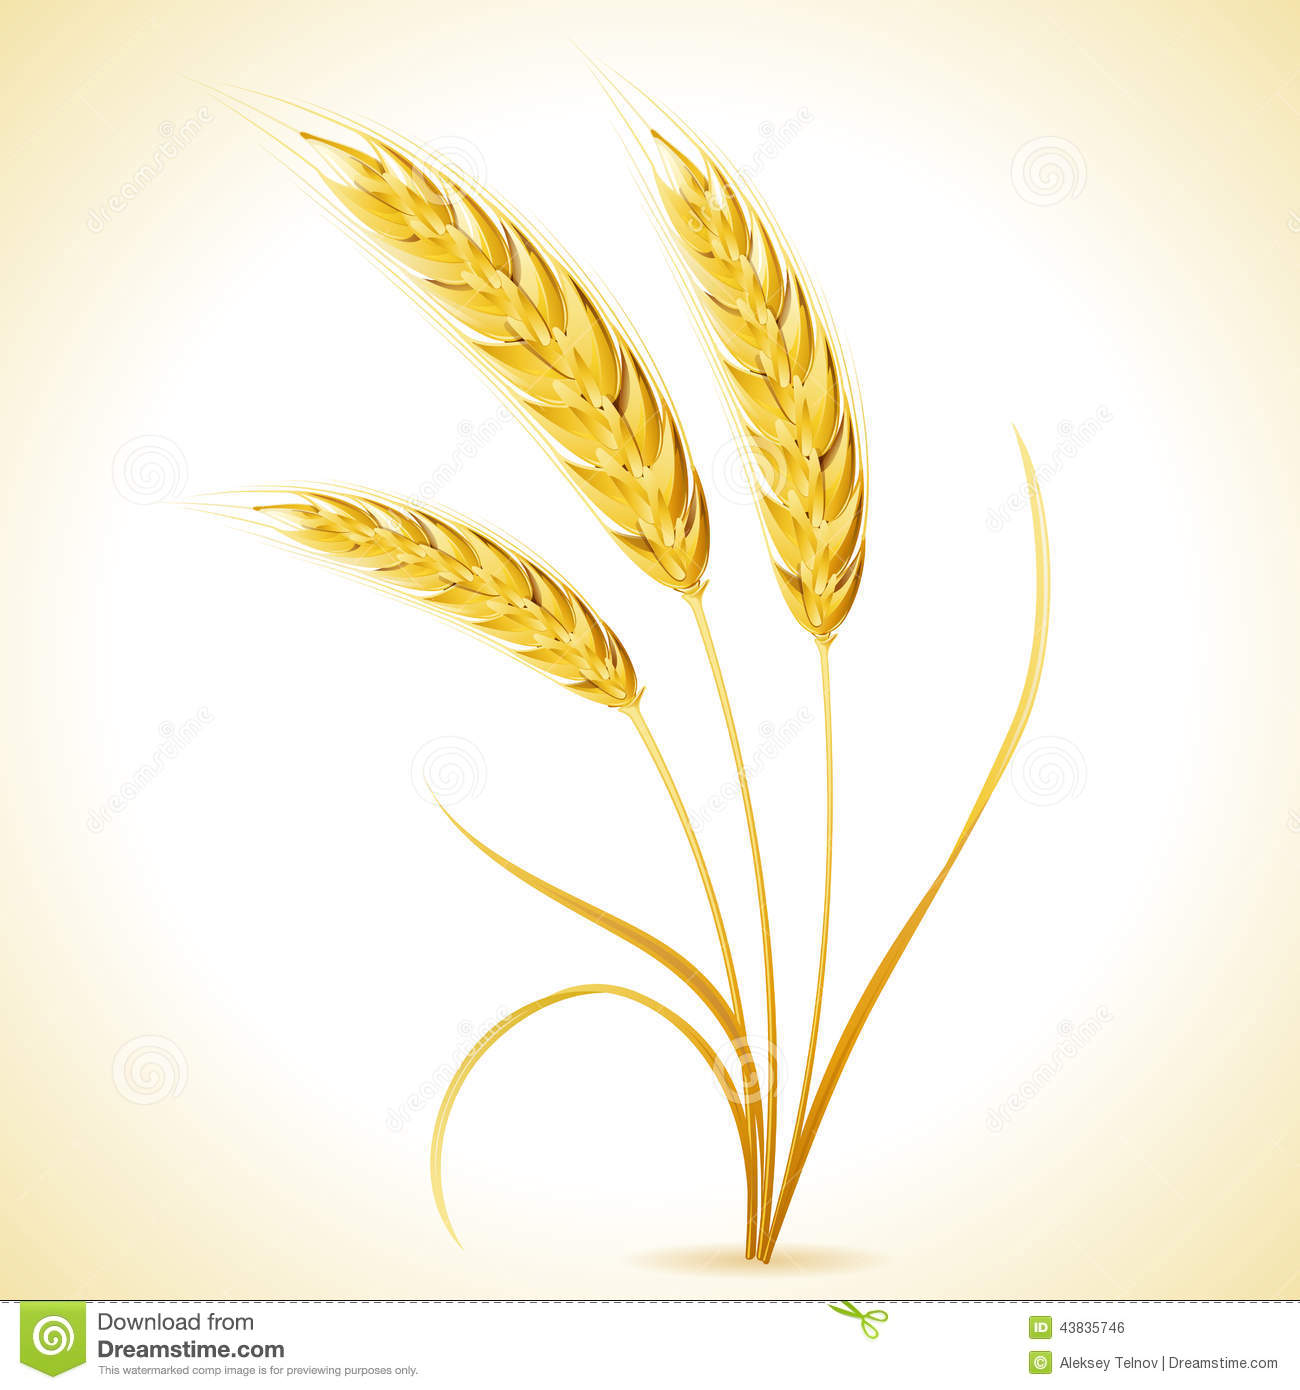 Barley Clip Art Ears Of Barley Royalty Free